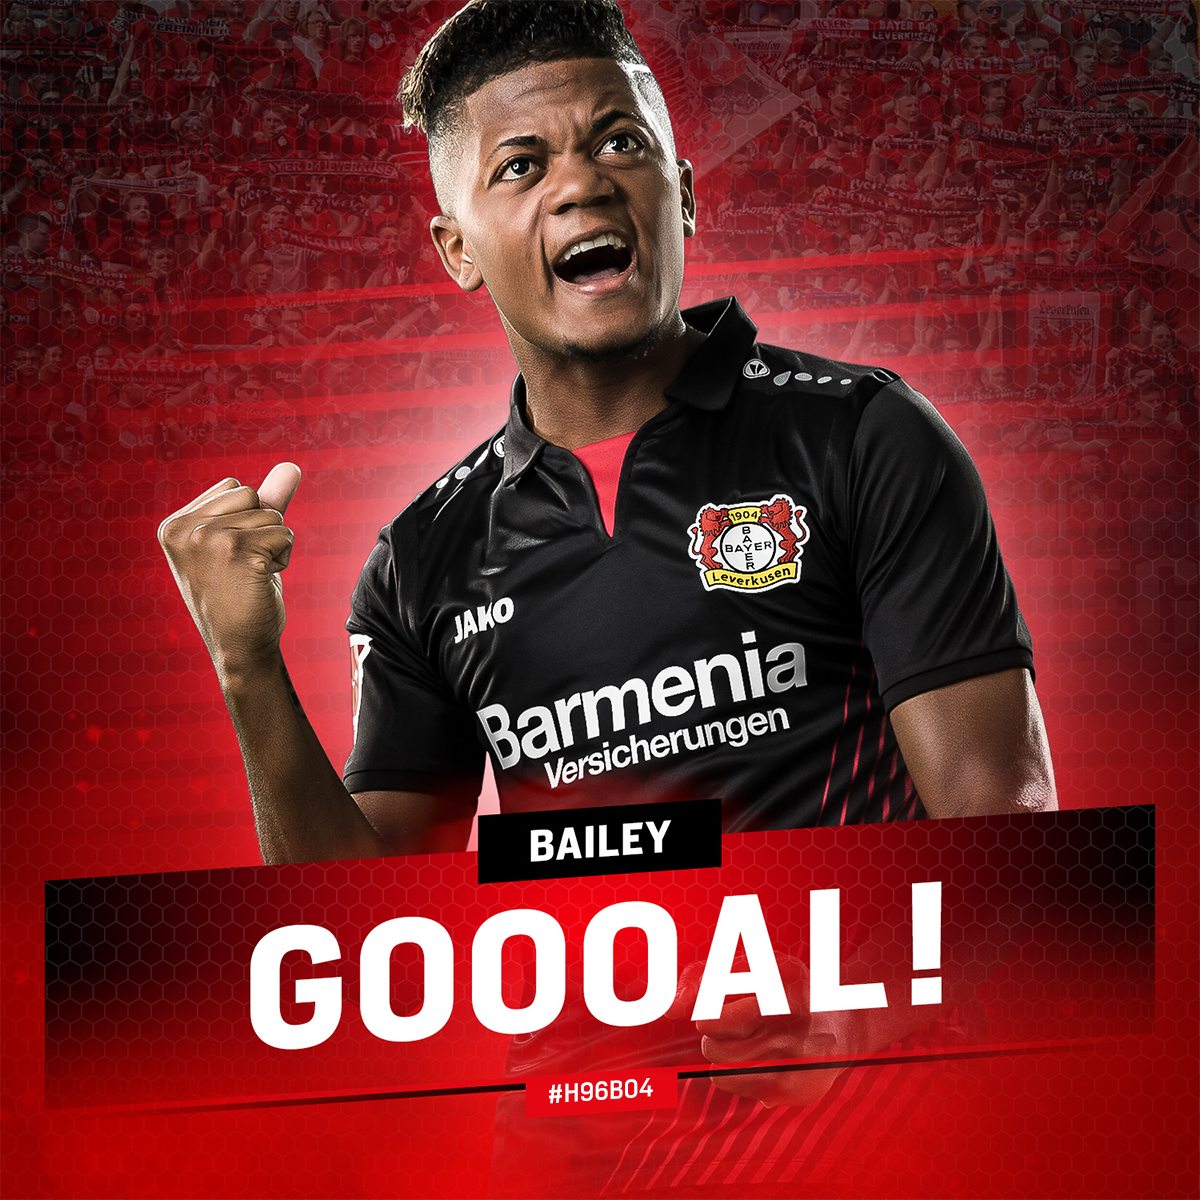 RT @bayer04_en: 47' GOOOOOAAAAL!!!  @leonbailey has been on the pitch or 2 minutes and we're level!!!  #H96B04 | 3:3 https://t.co/fUBYoYh4tl